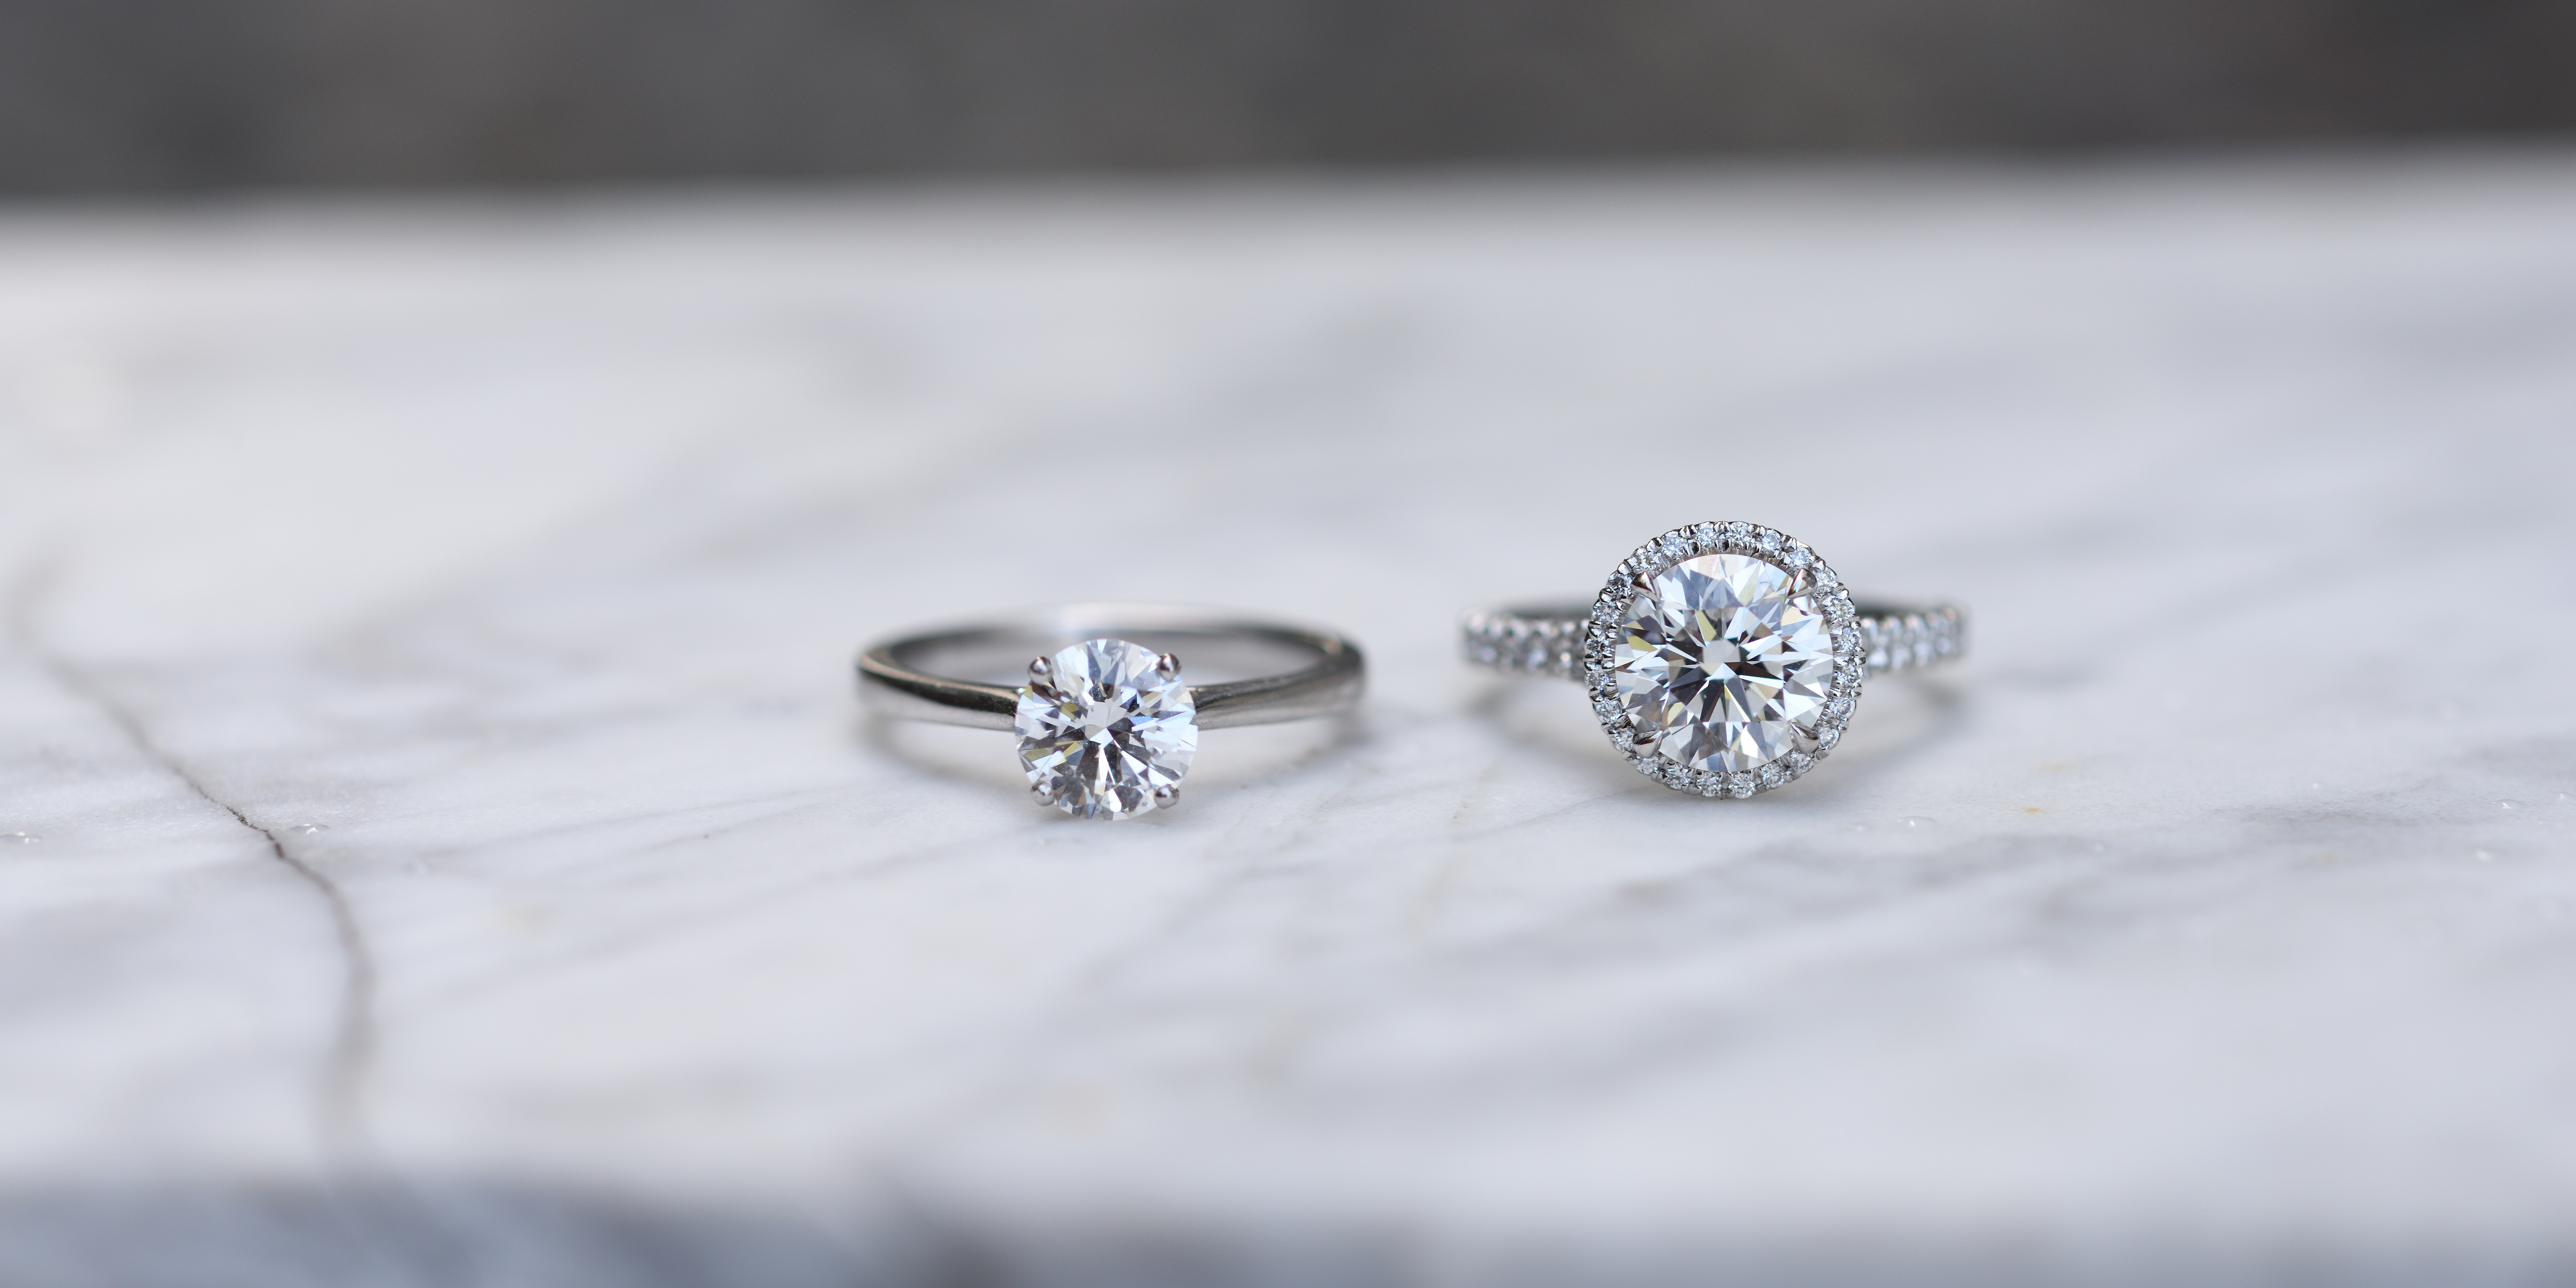 How to Renew Your Engagement Ring For Your Evolving Style